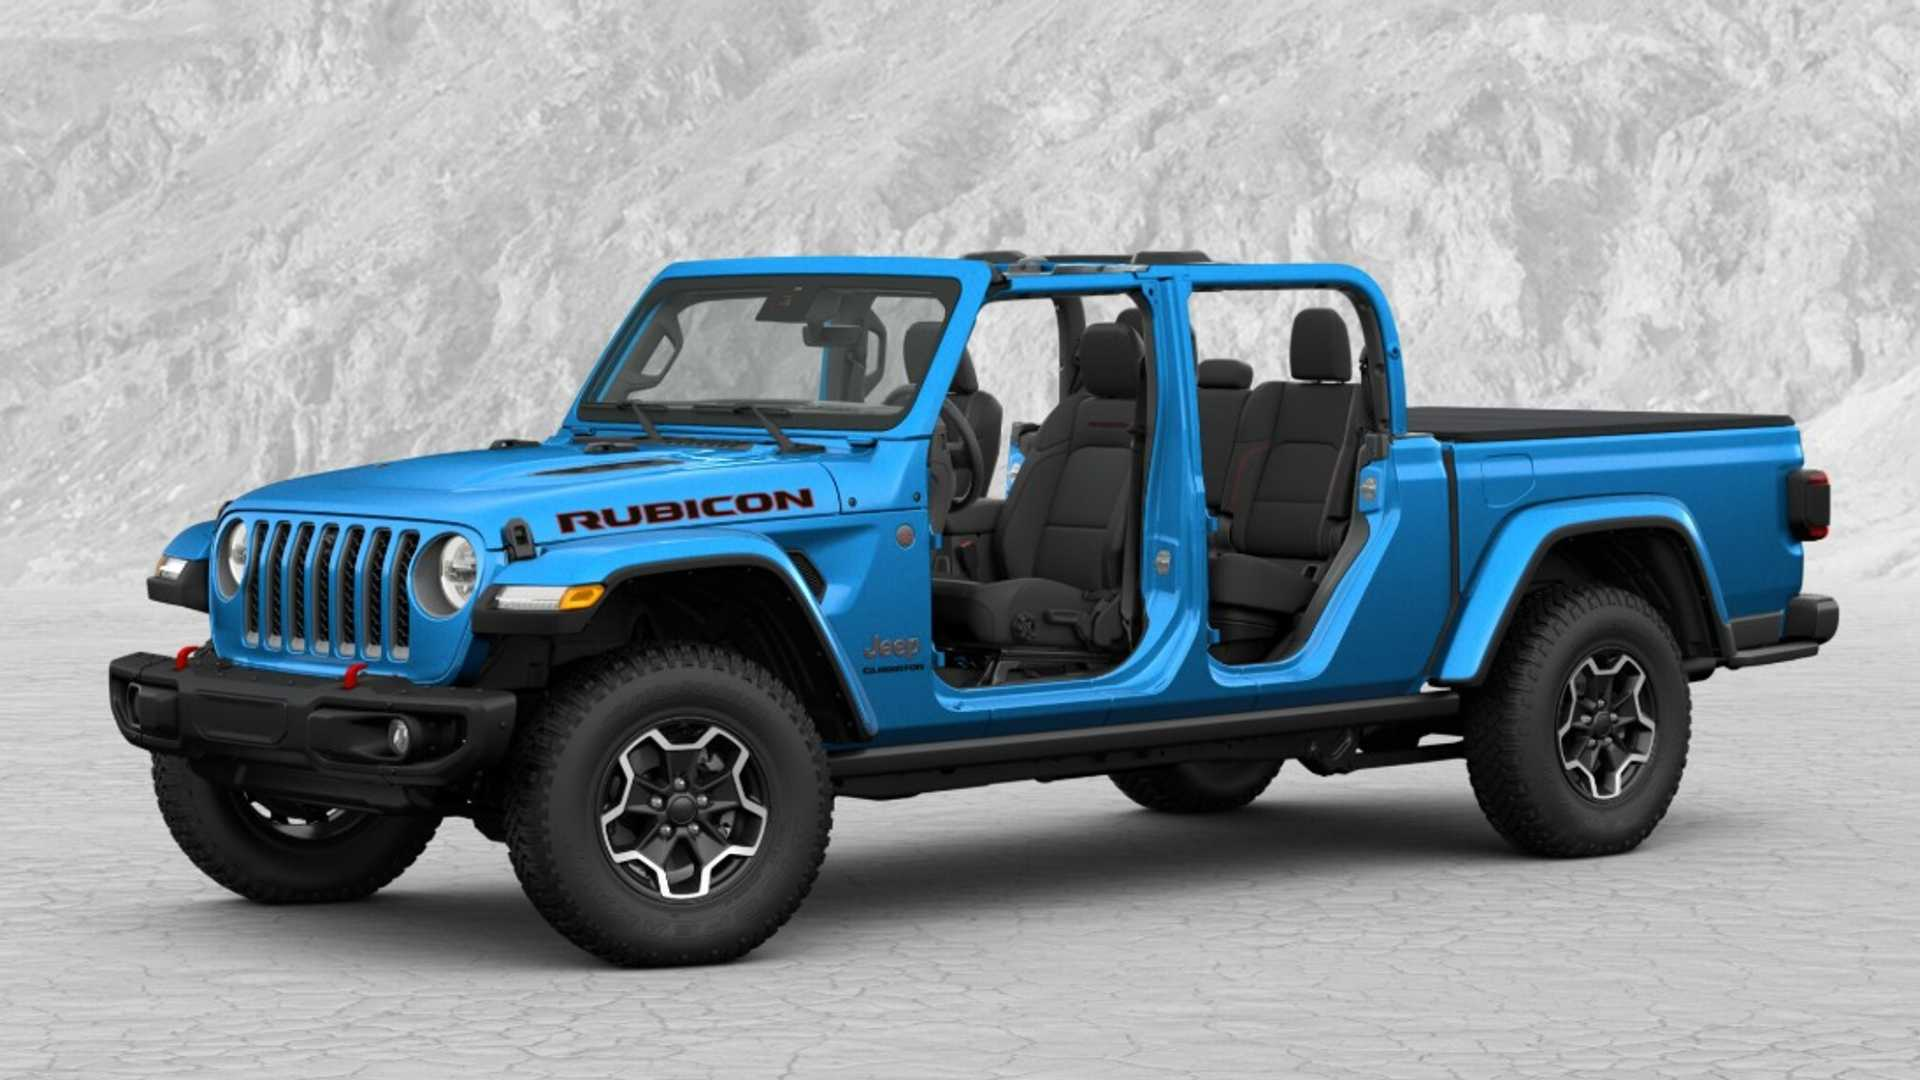 58 All New Jeep Rubicon 2020 Price Specs with Jeep Rubicon 2020 Price